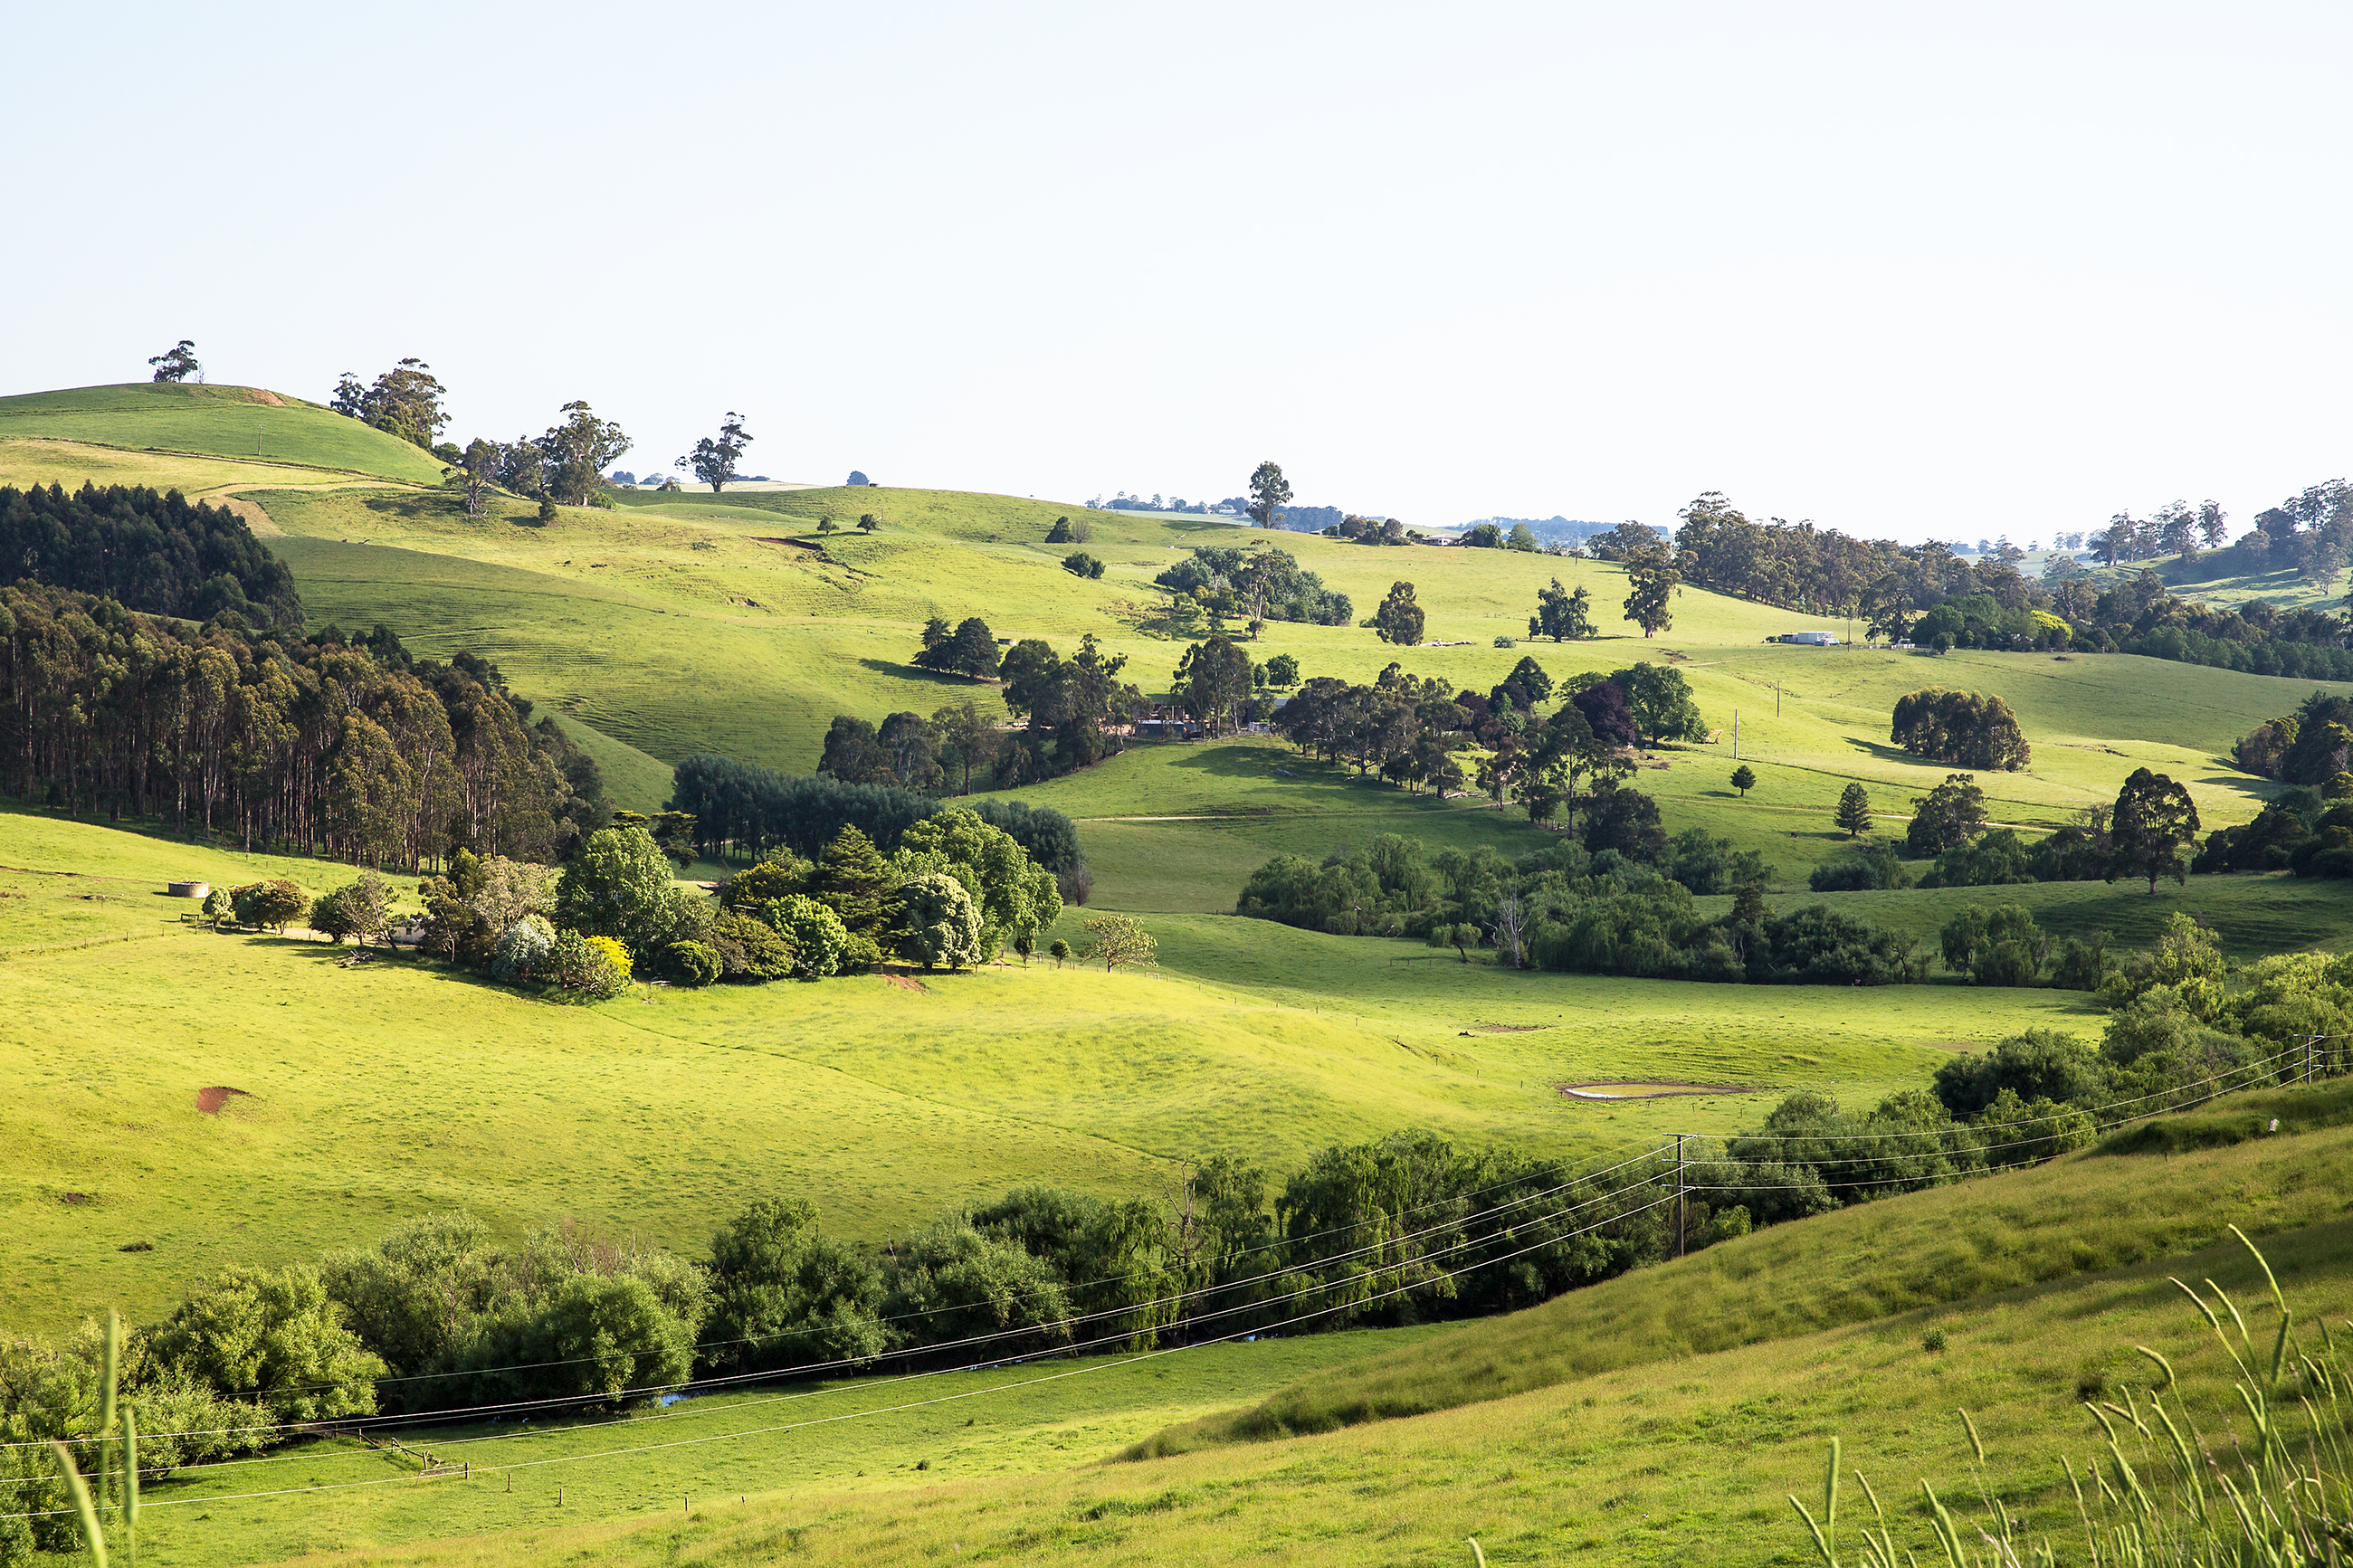 Grand Ridge Road, Gippsland